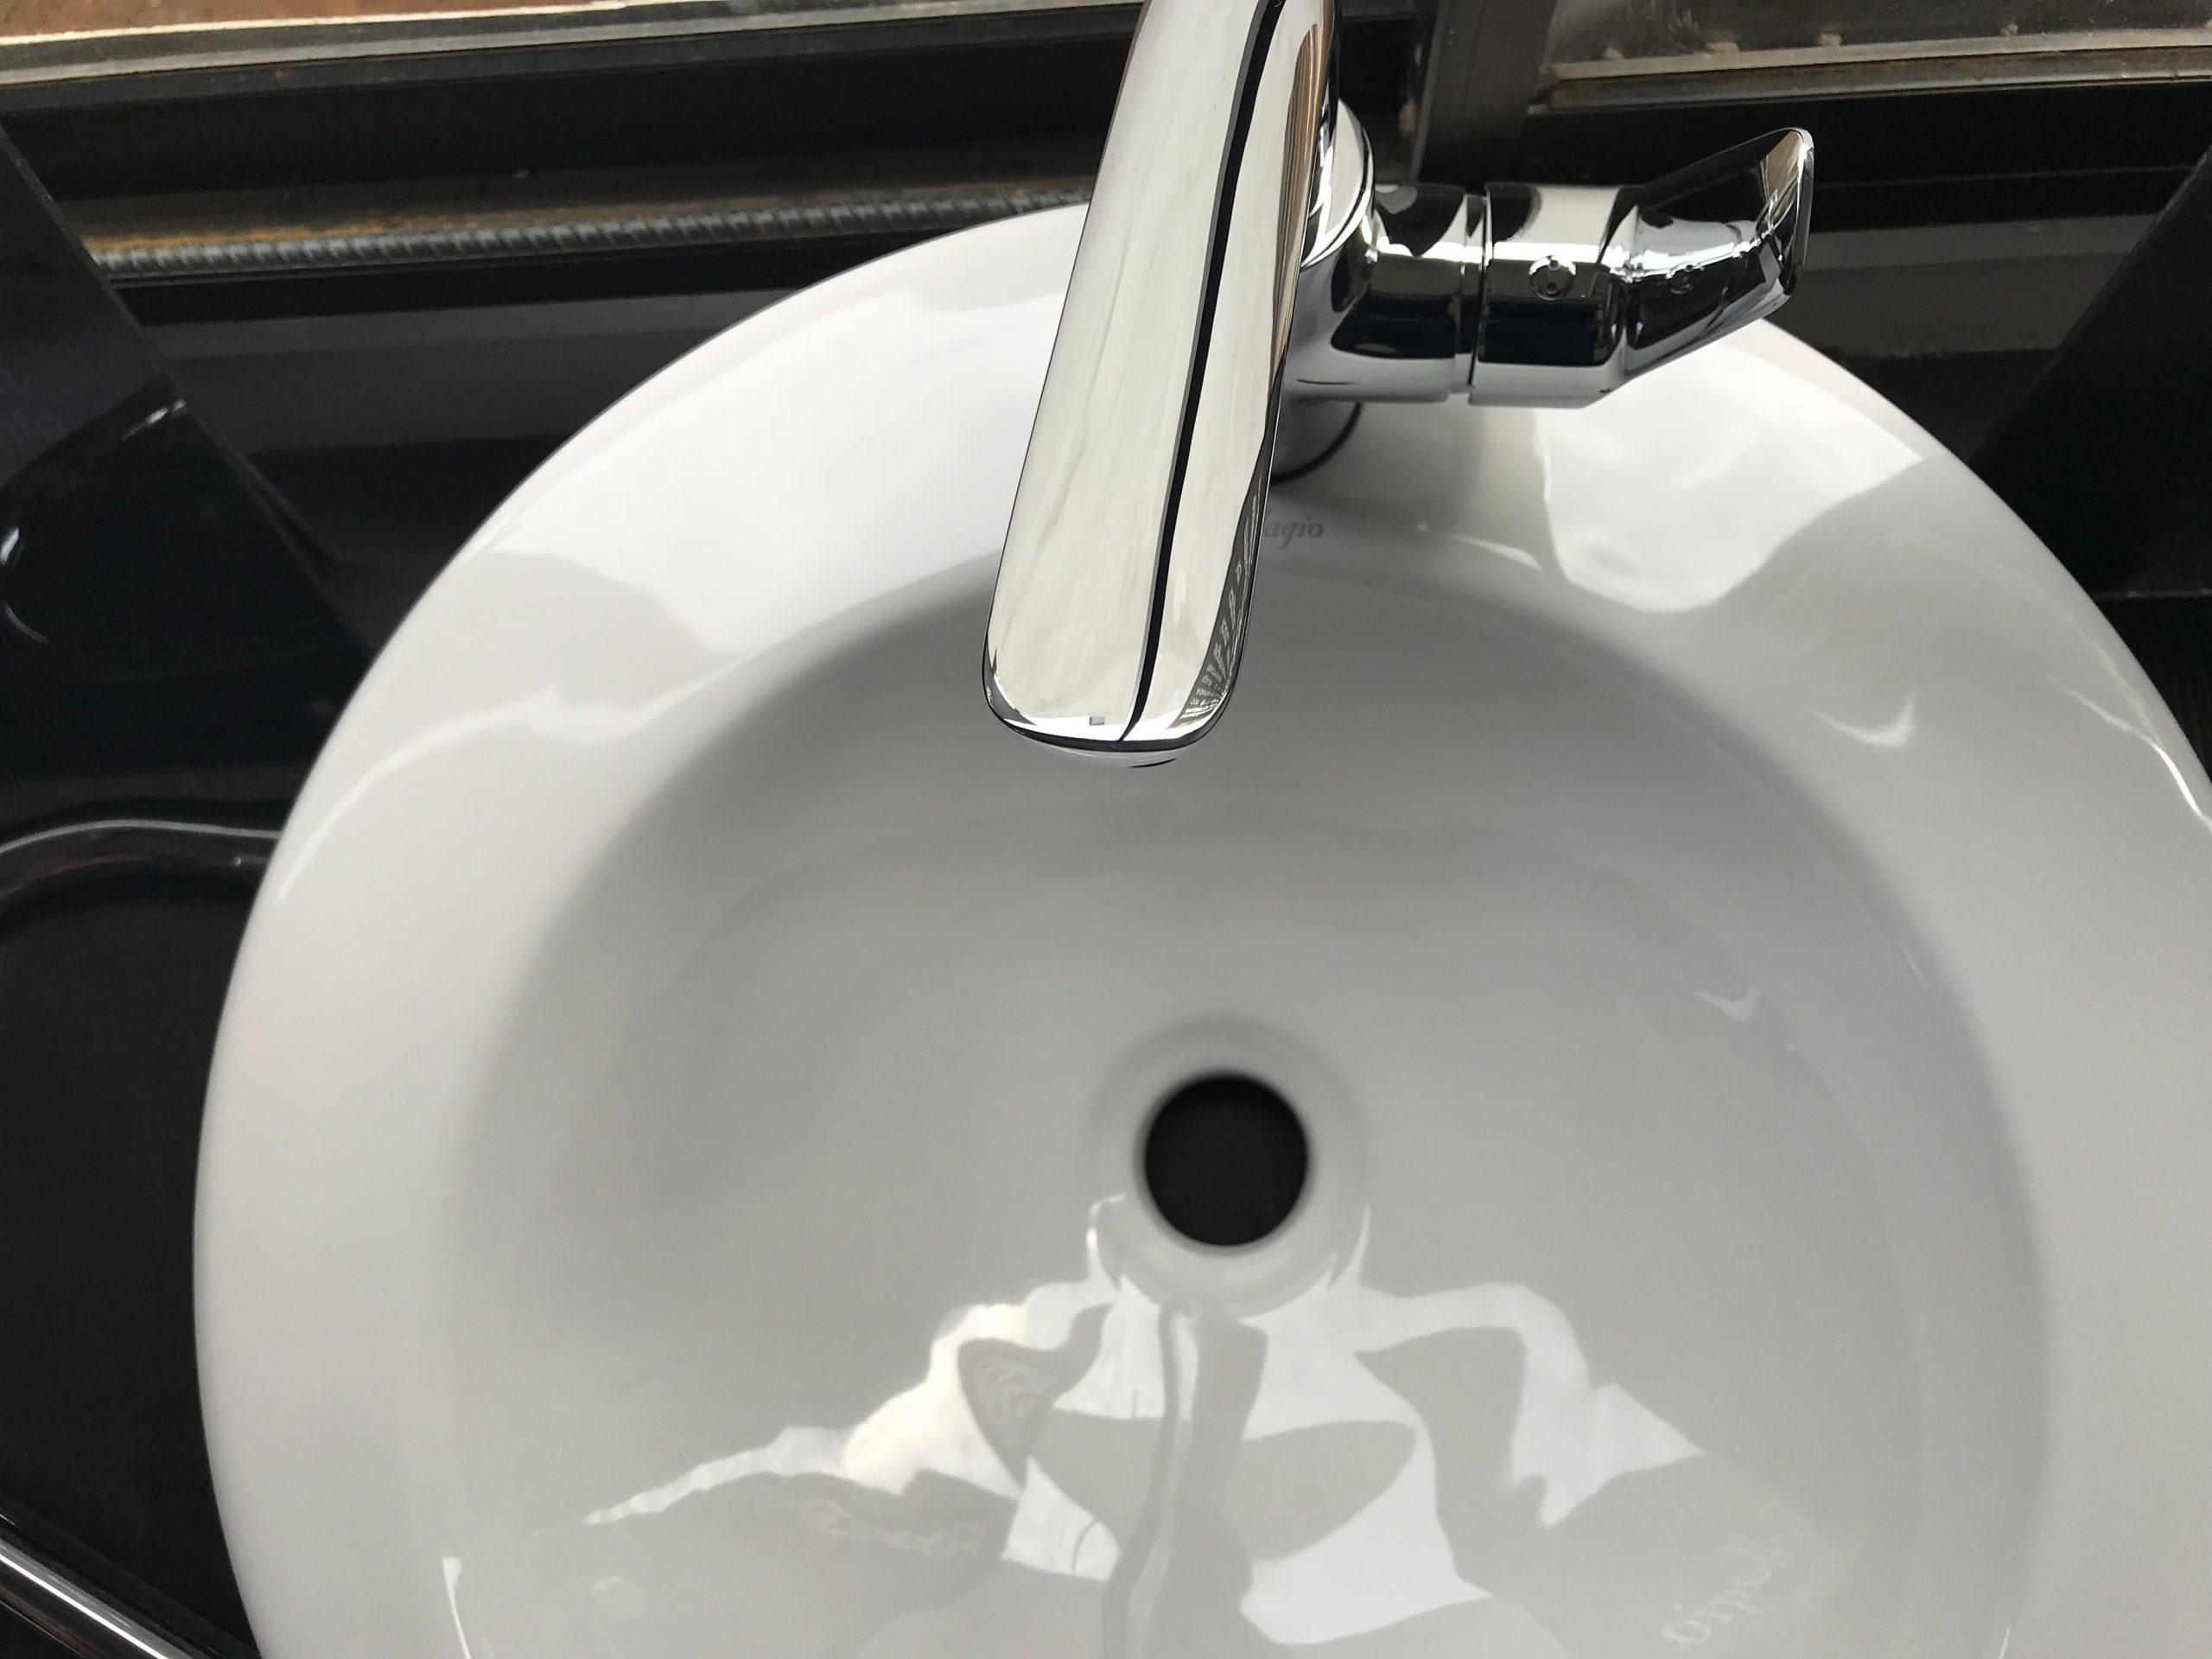 5 of the Most Common Plumbing Problems and How to Spot Them